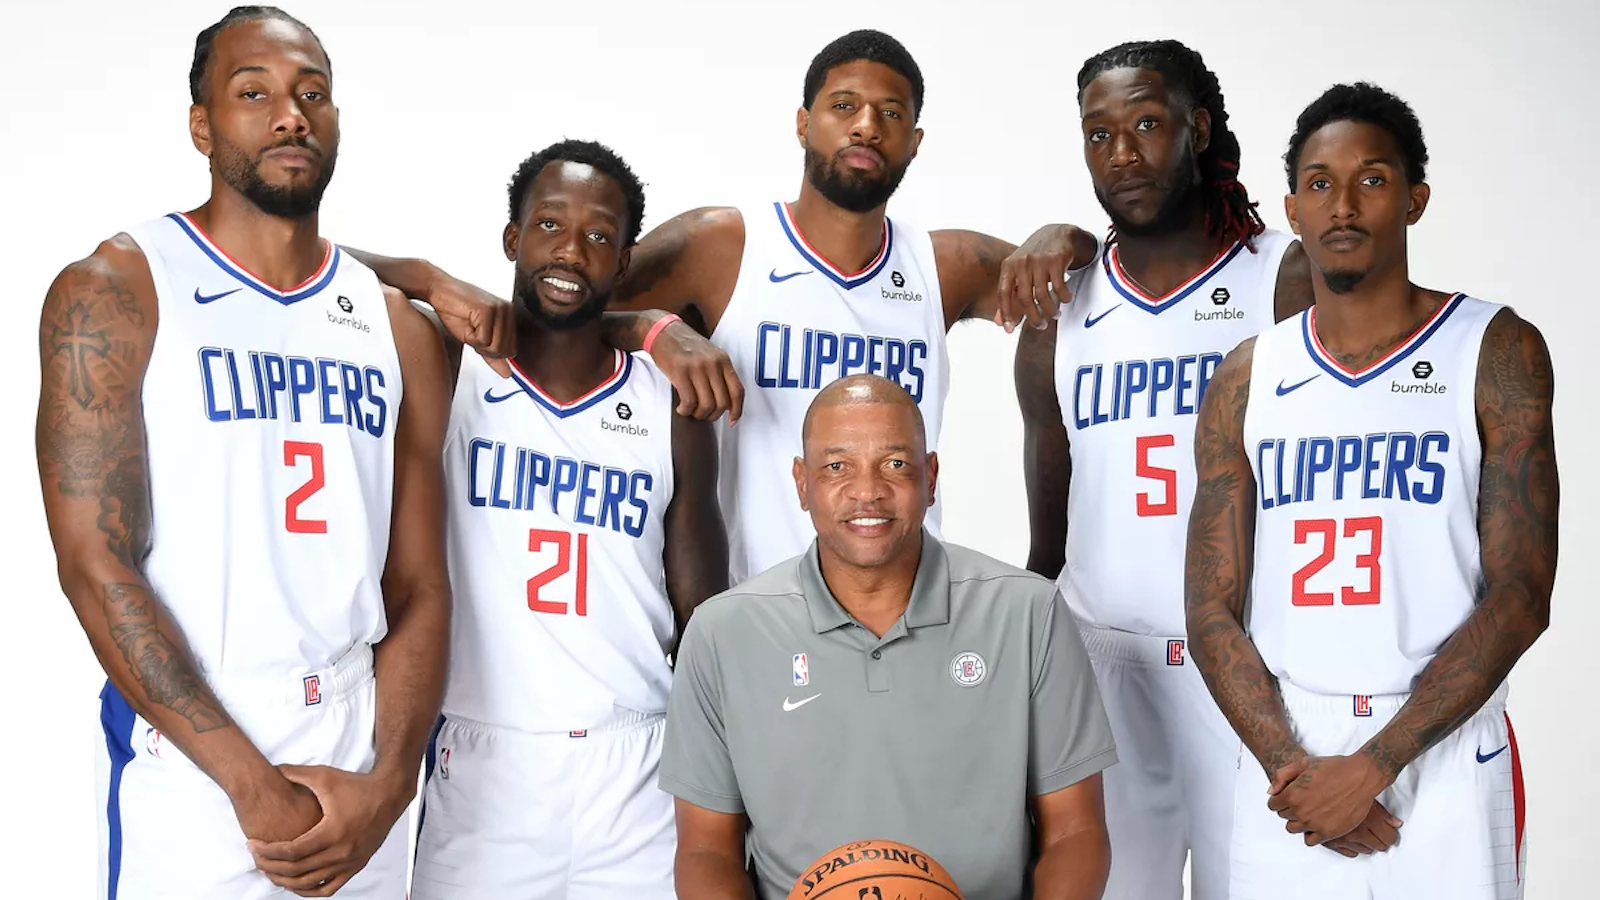 """Justin Kubatko en Twitter: """"The Clippers have only had 24 games this season  in which Kawhi Leonard, Paul George, Lou Williams, Montrezl Harrell, and  Patrick Beverley all played. L.A. is 20-4 in"""